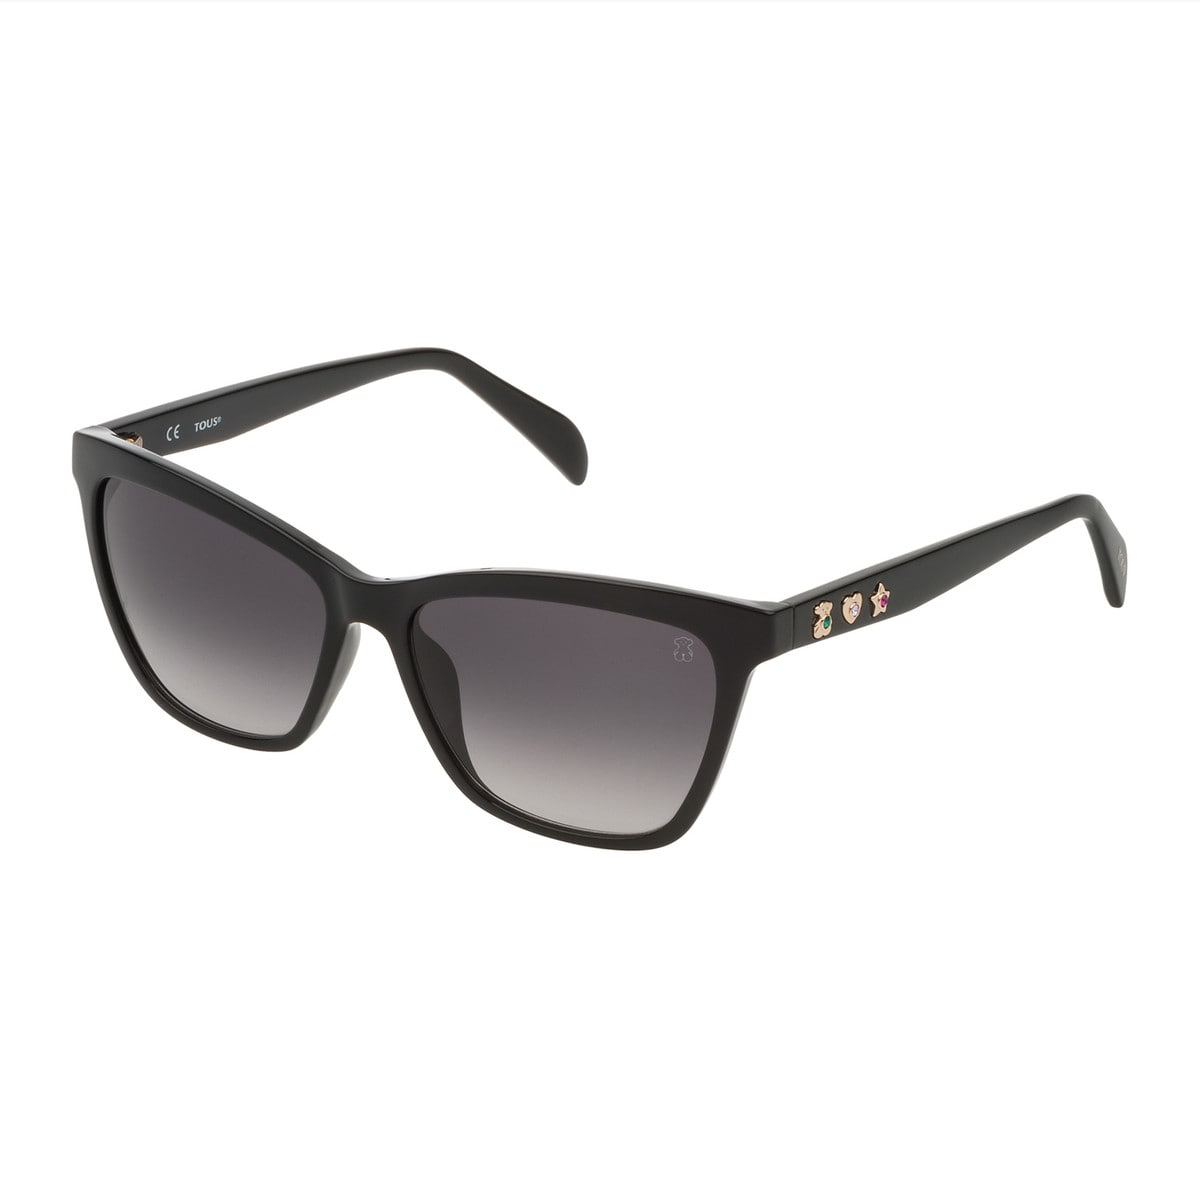 b680956467 Lentes de sol Three Motives Squared en color negro - Tous, Joyeros ...